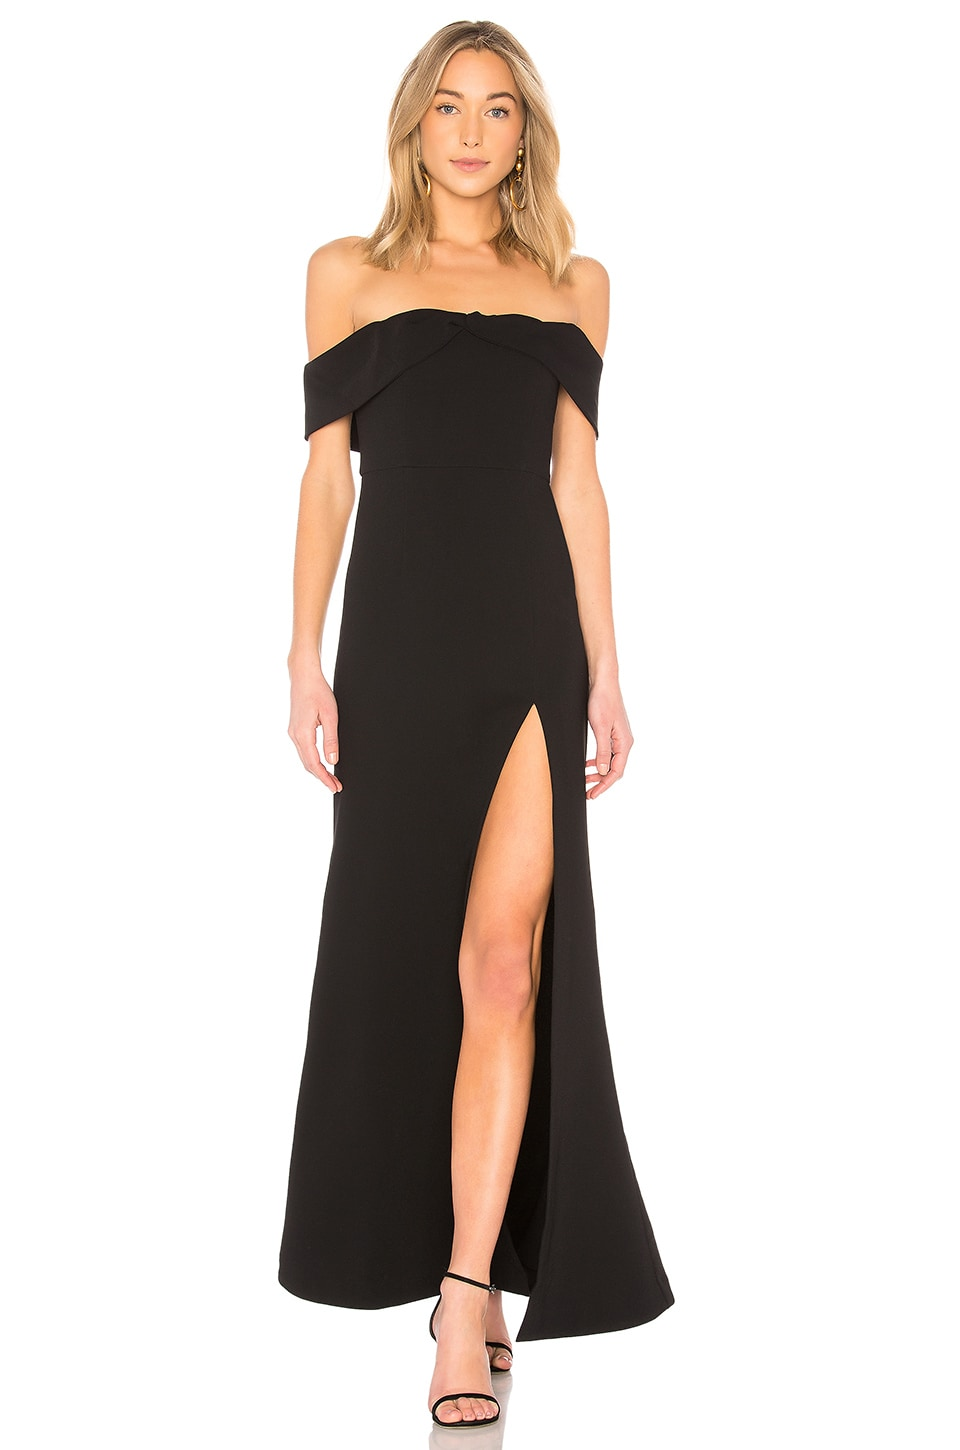 Mas Besos Gown